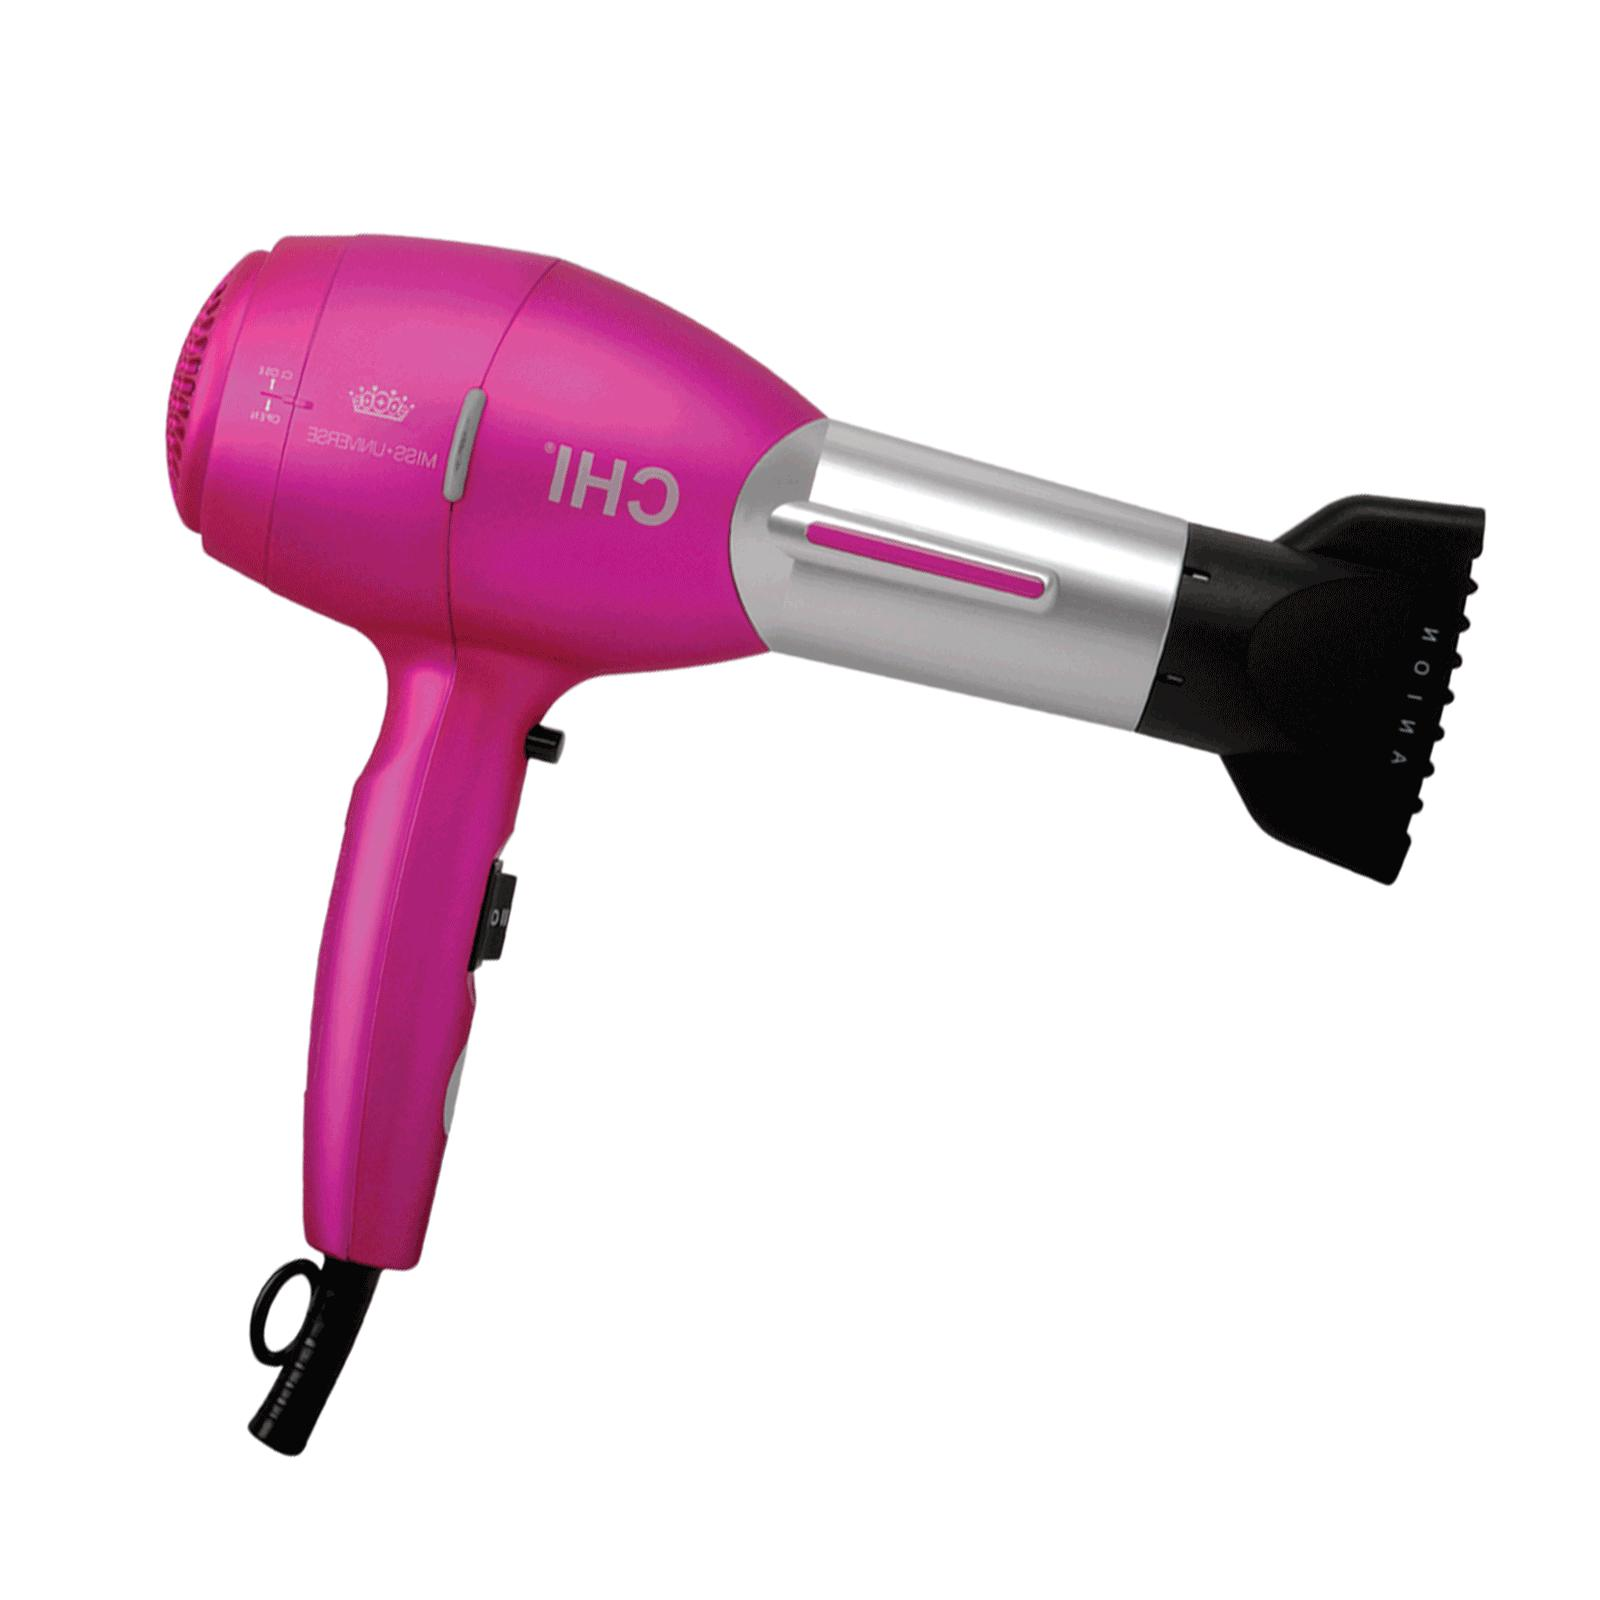 NEW!!! PINK UNIVERSE HAIR DRYER